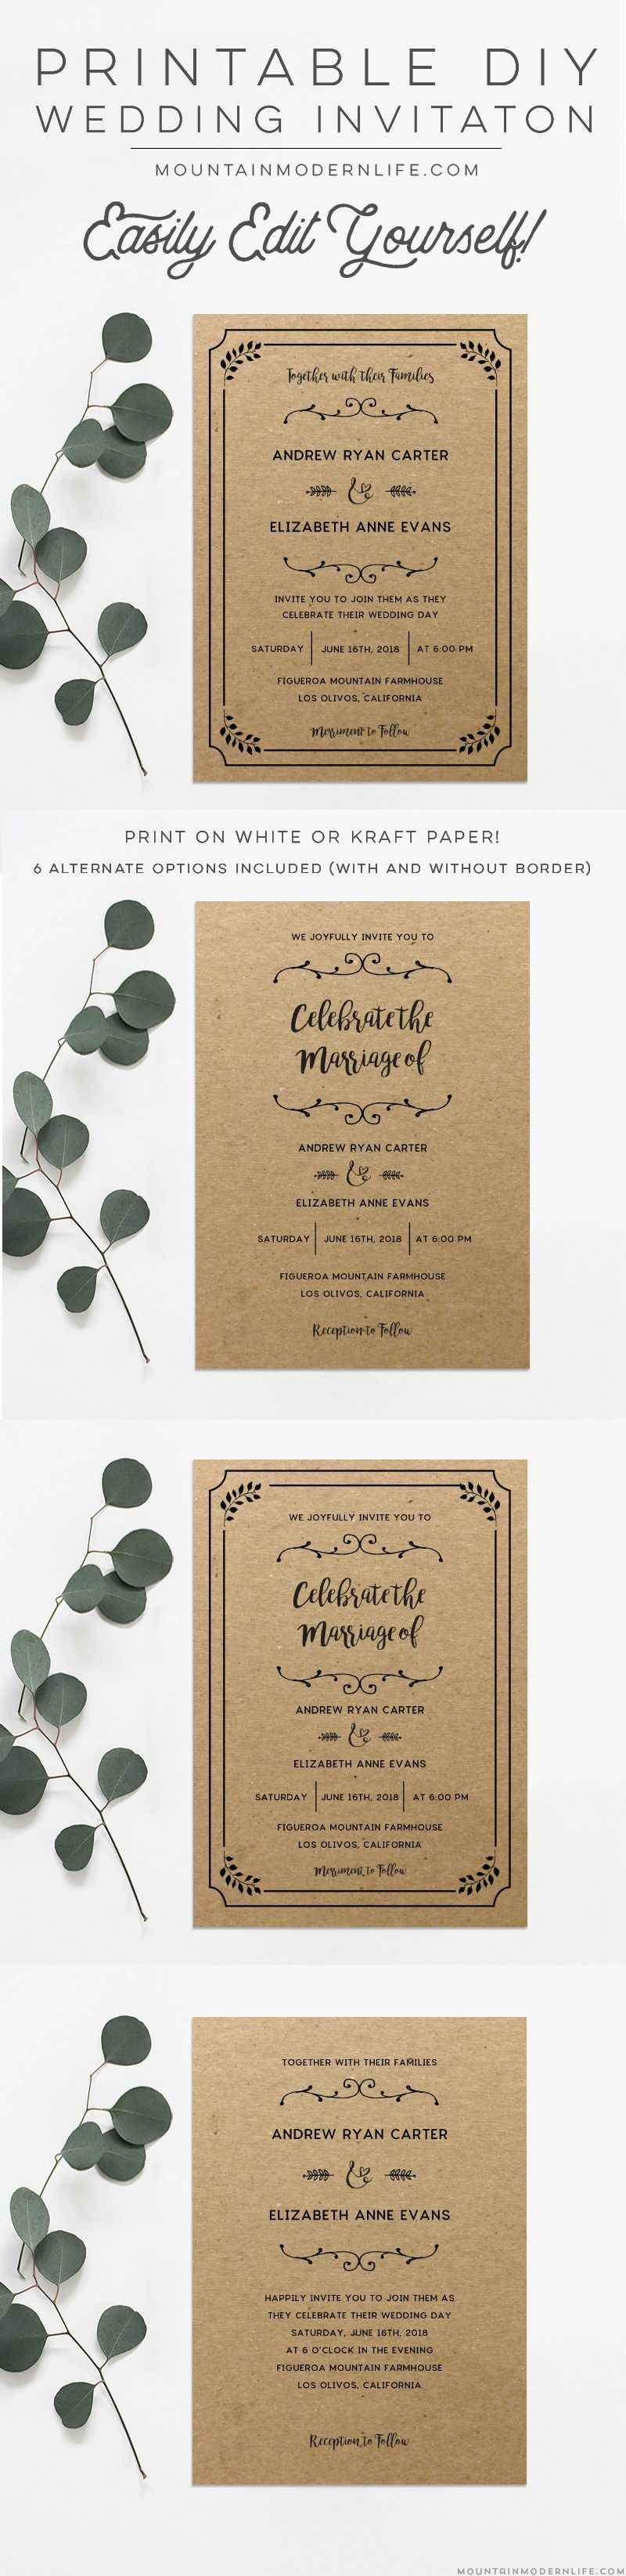 Printable DIY Wedding Invitation | Diy wedding invitations, Diy ...